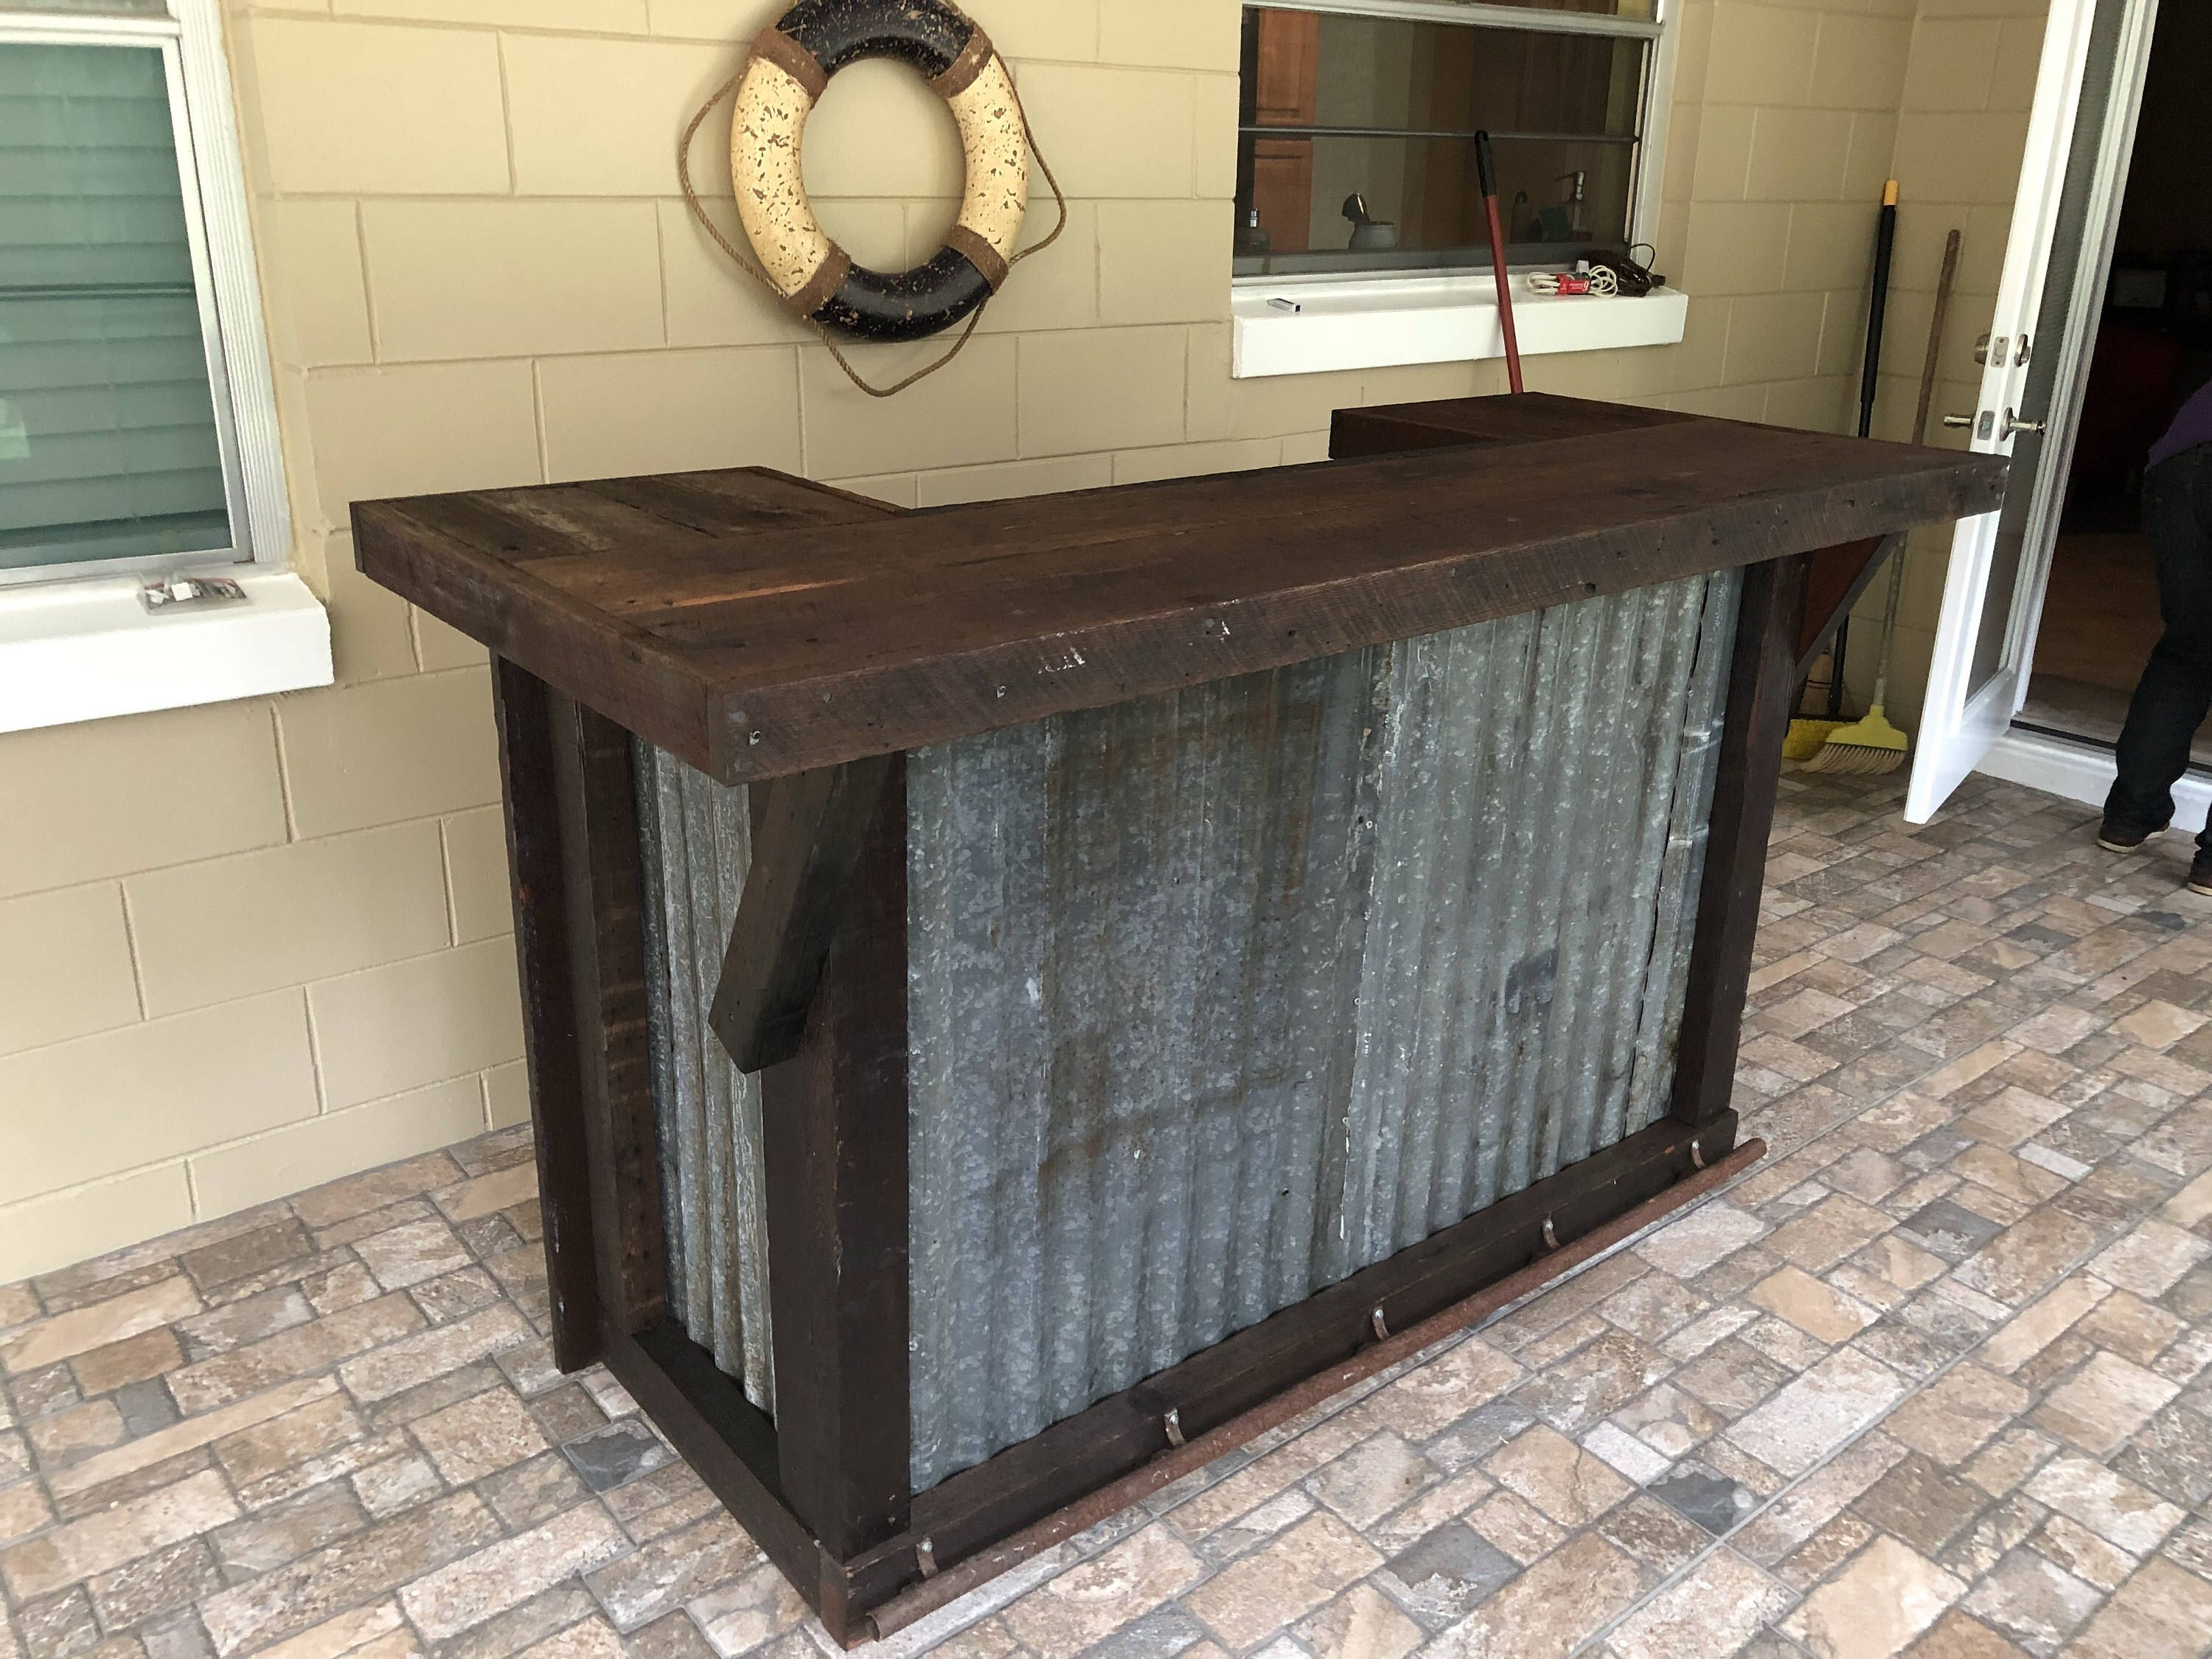 The Rough And Rustic 100 Year Old Barn Wood We Ship To All 50 States Https Www Etsy Com Listing 565498889 The Rough An Metal Bar Rusted Metal Metal Decor